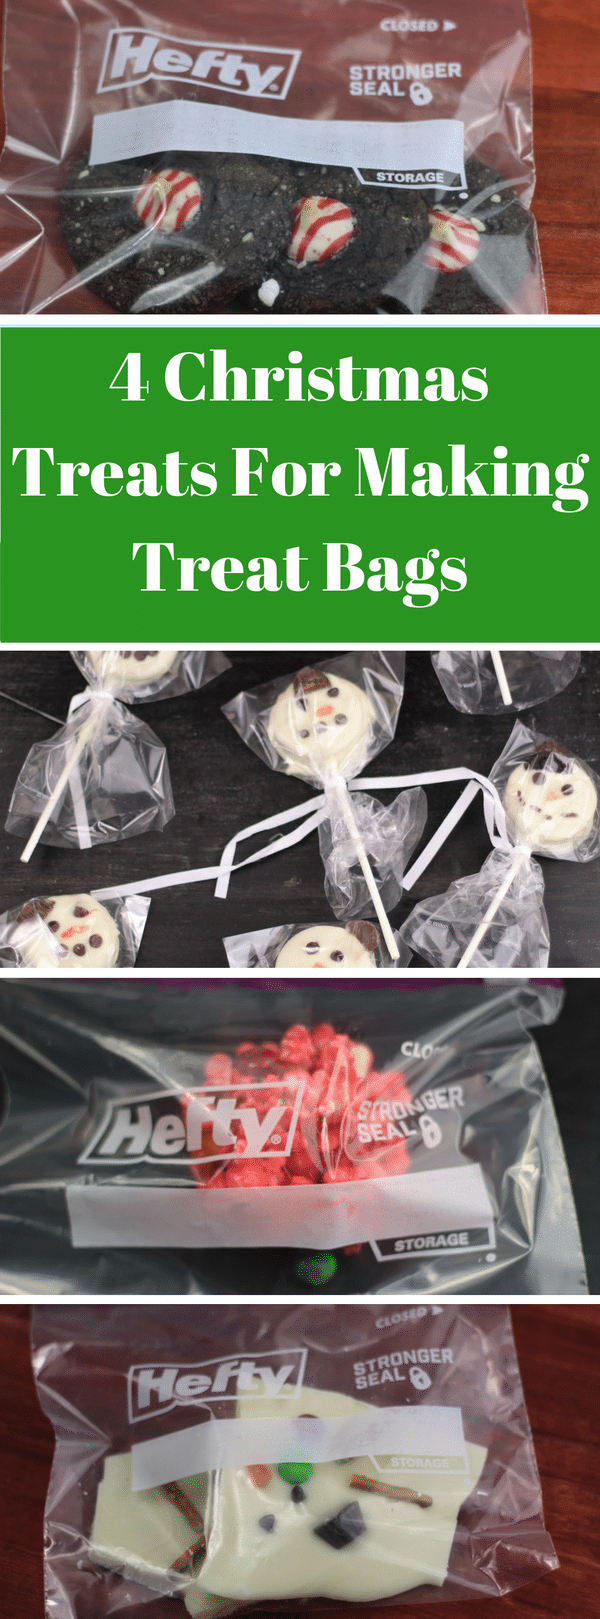 4 Christmas Treats For Making Treat Bags